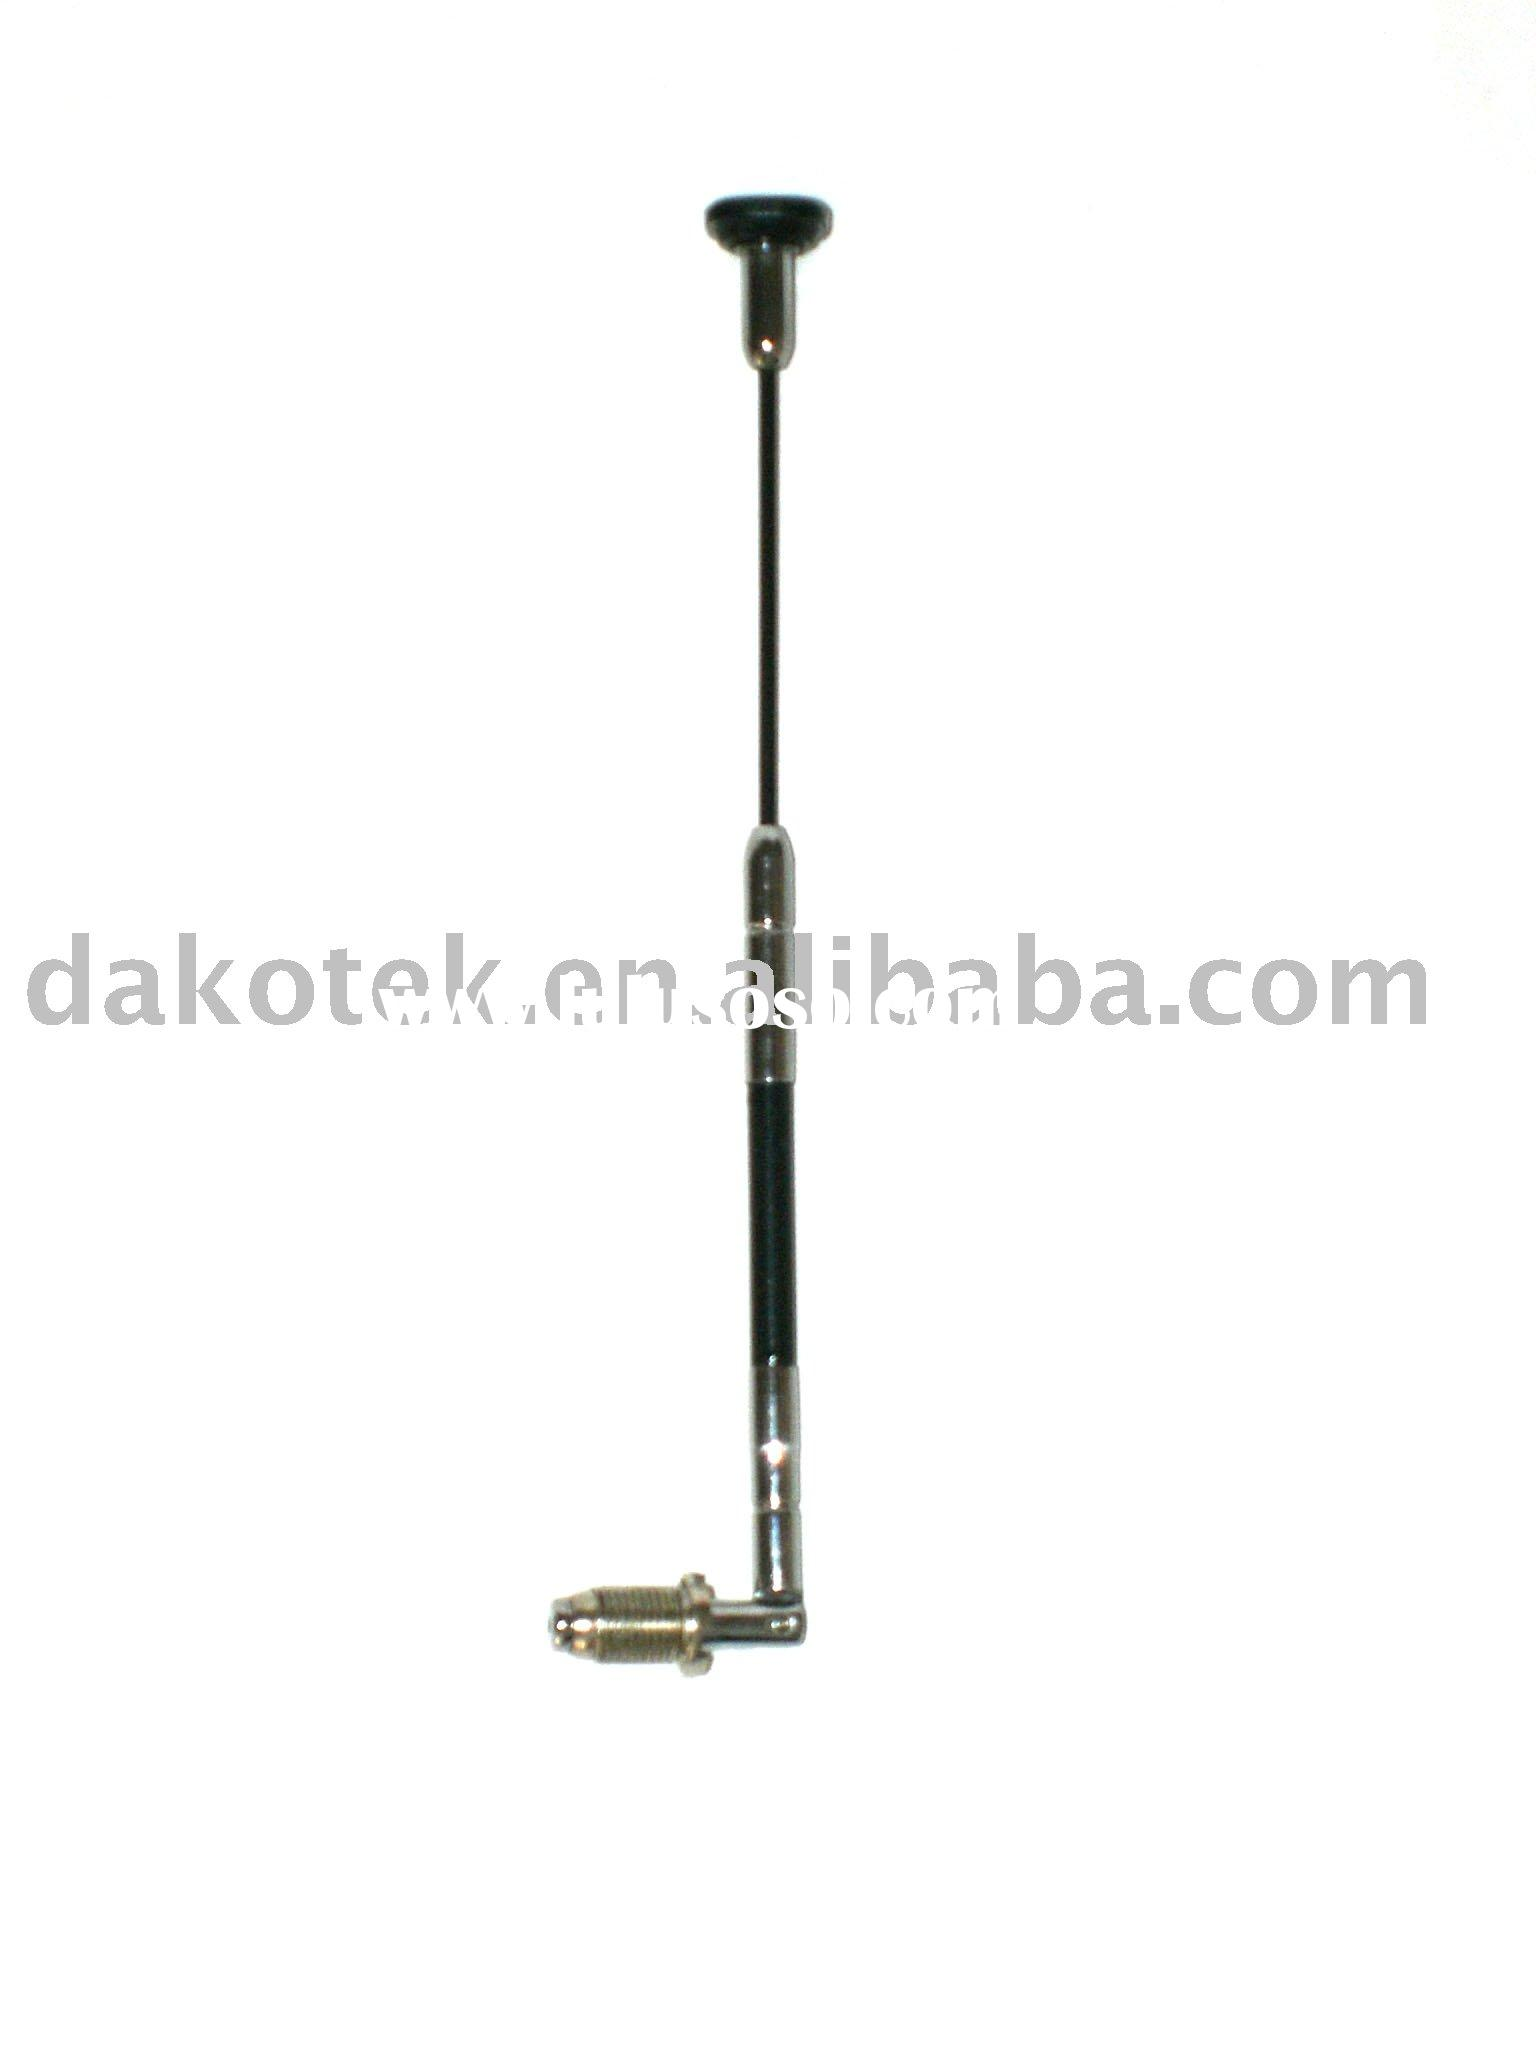 Portable TV Antenna(manufacture)